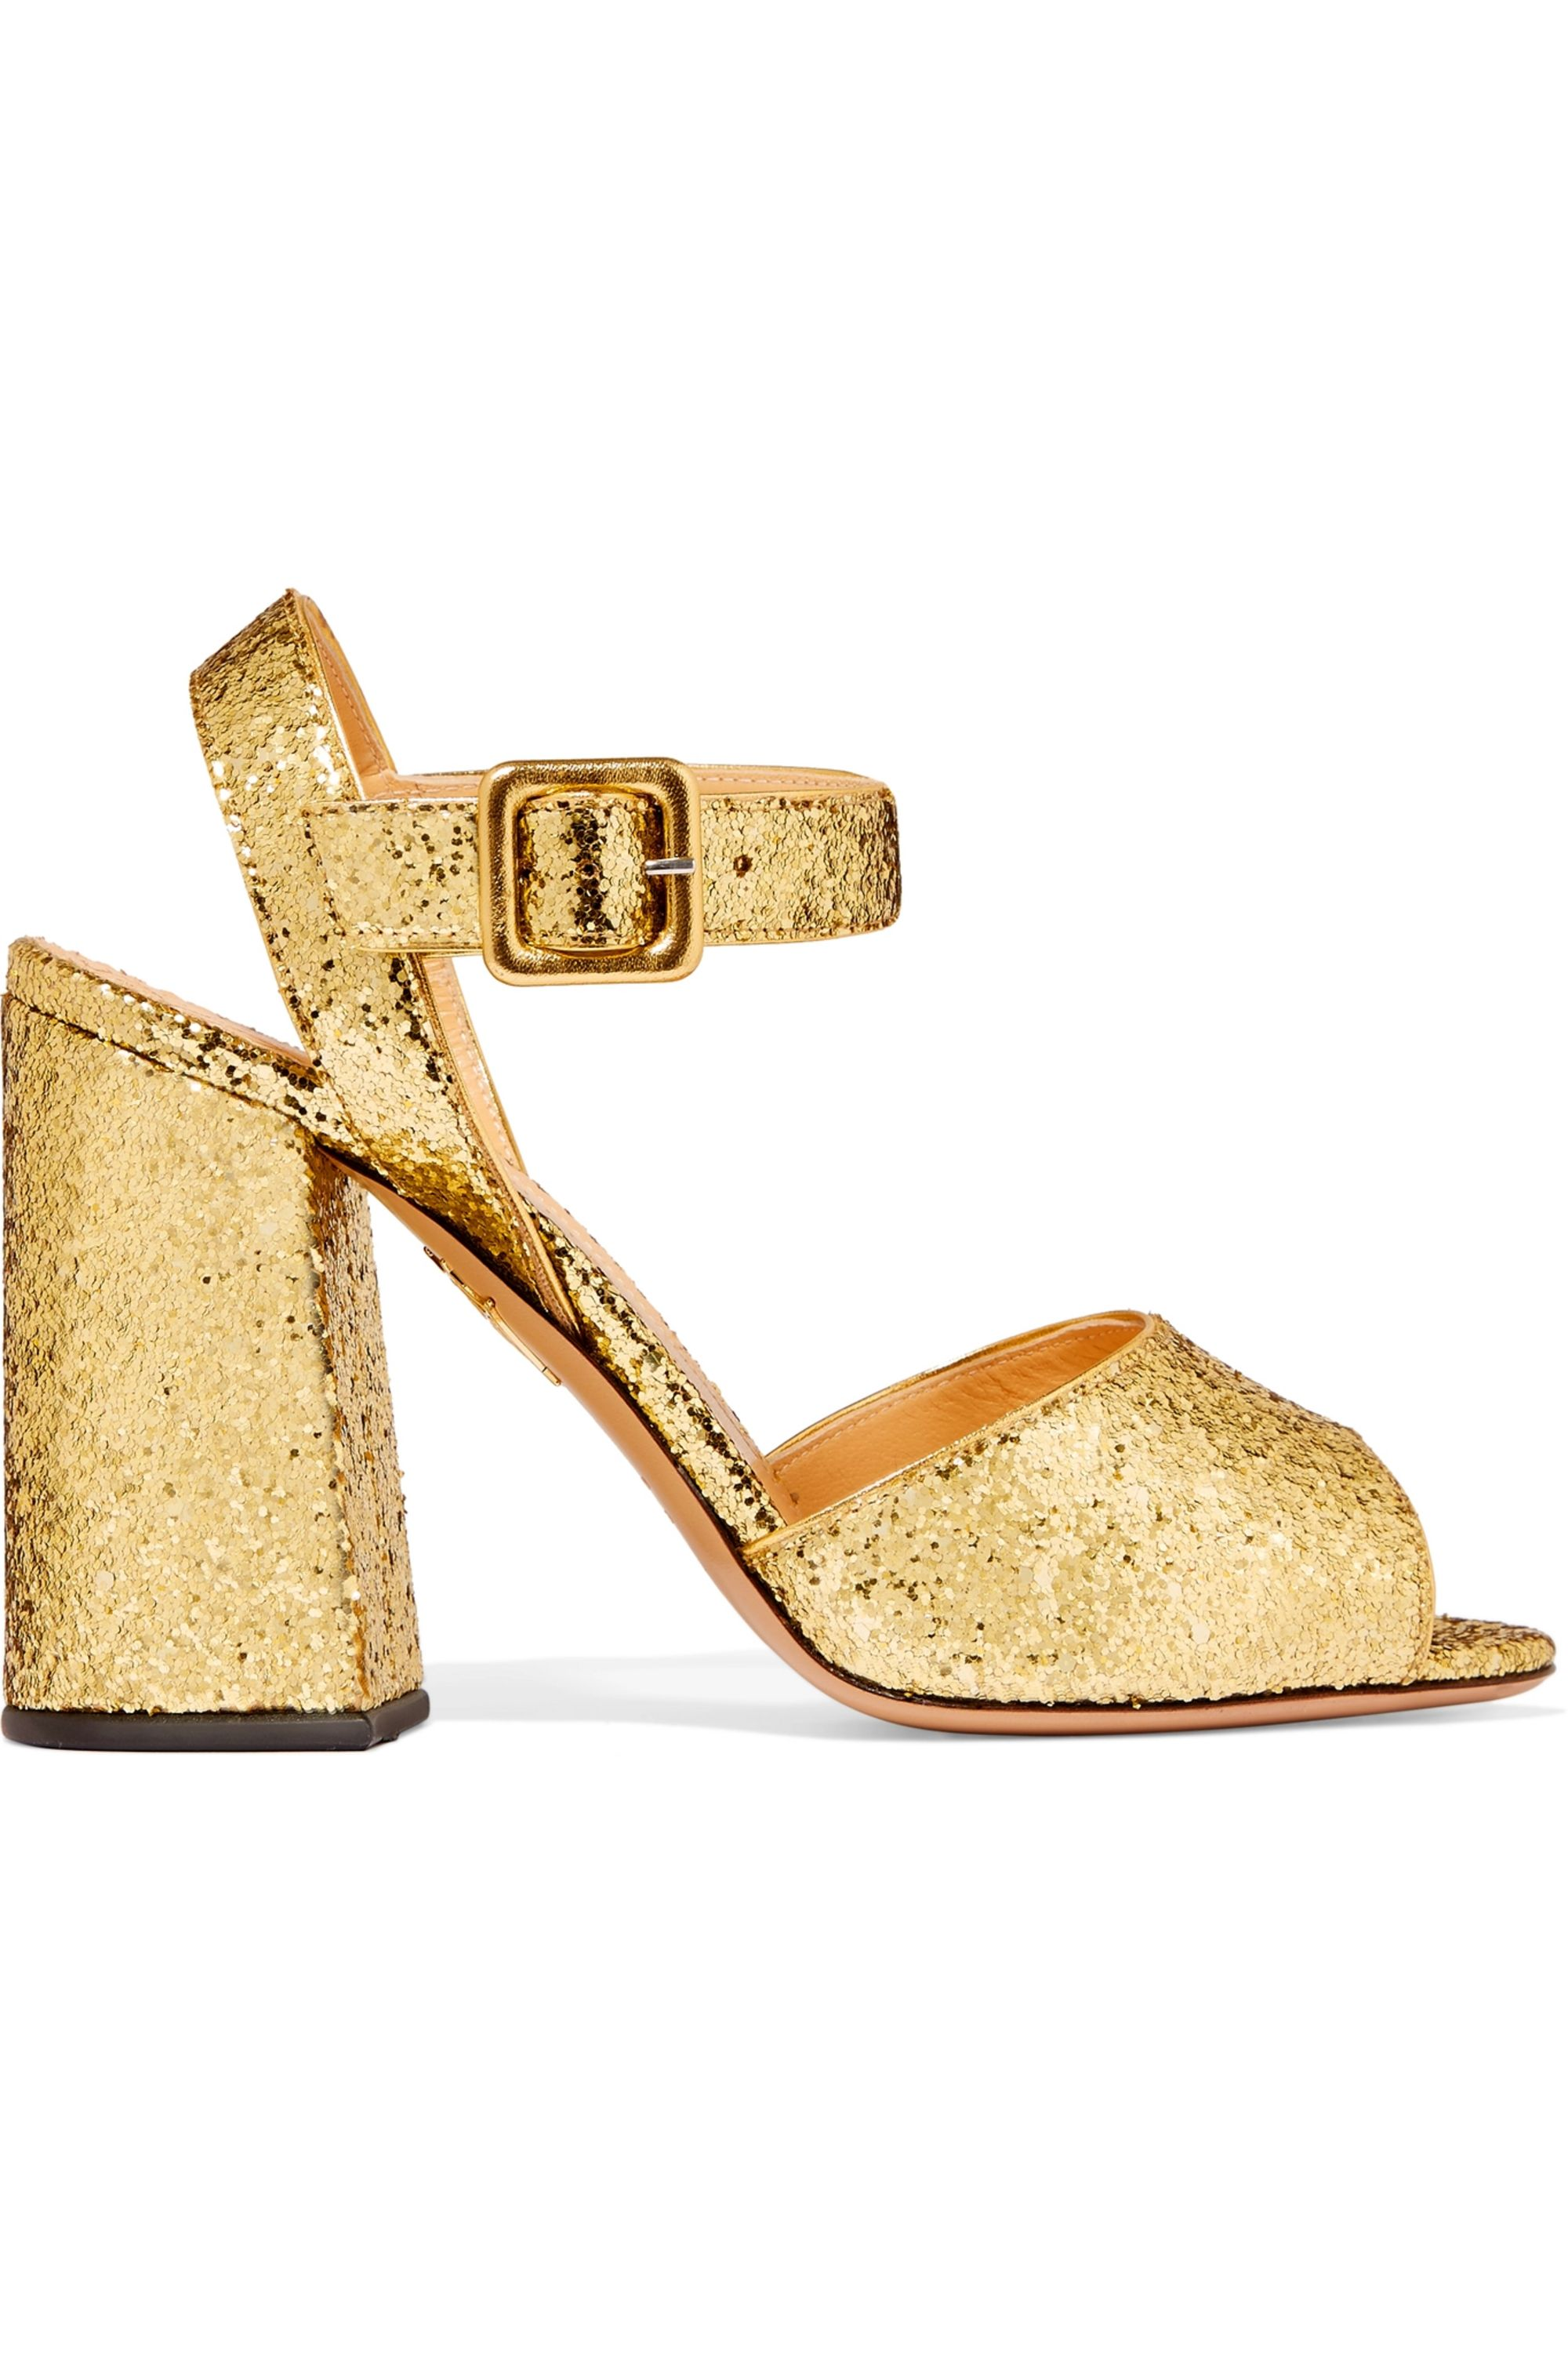 Charlotte Olympia Emma glittered leather sandals